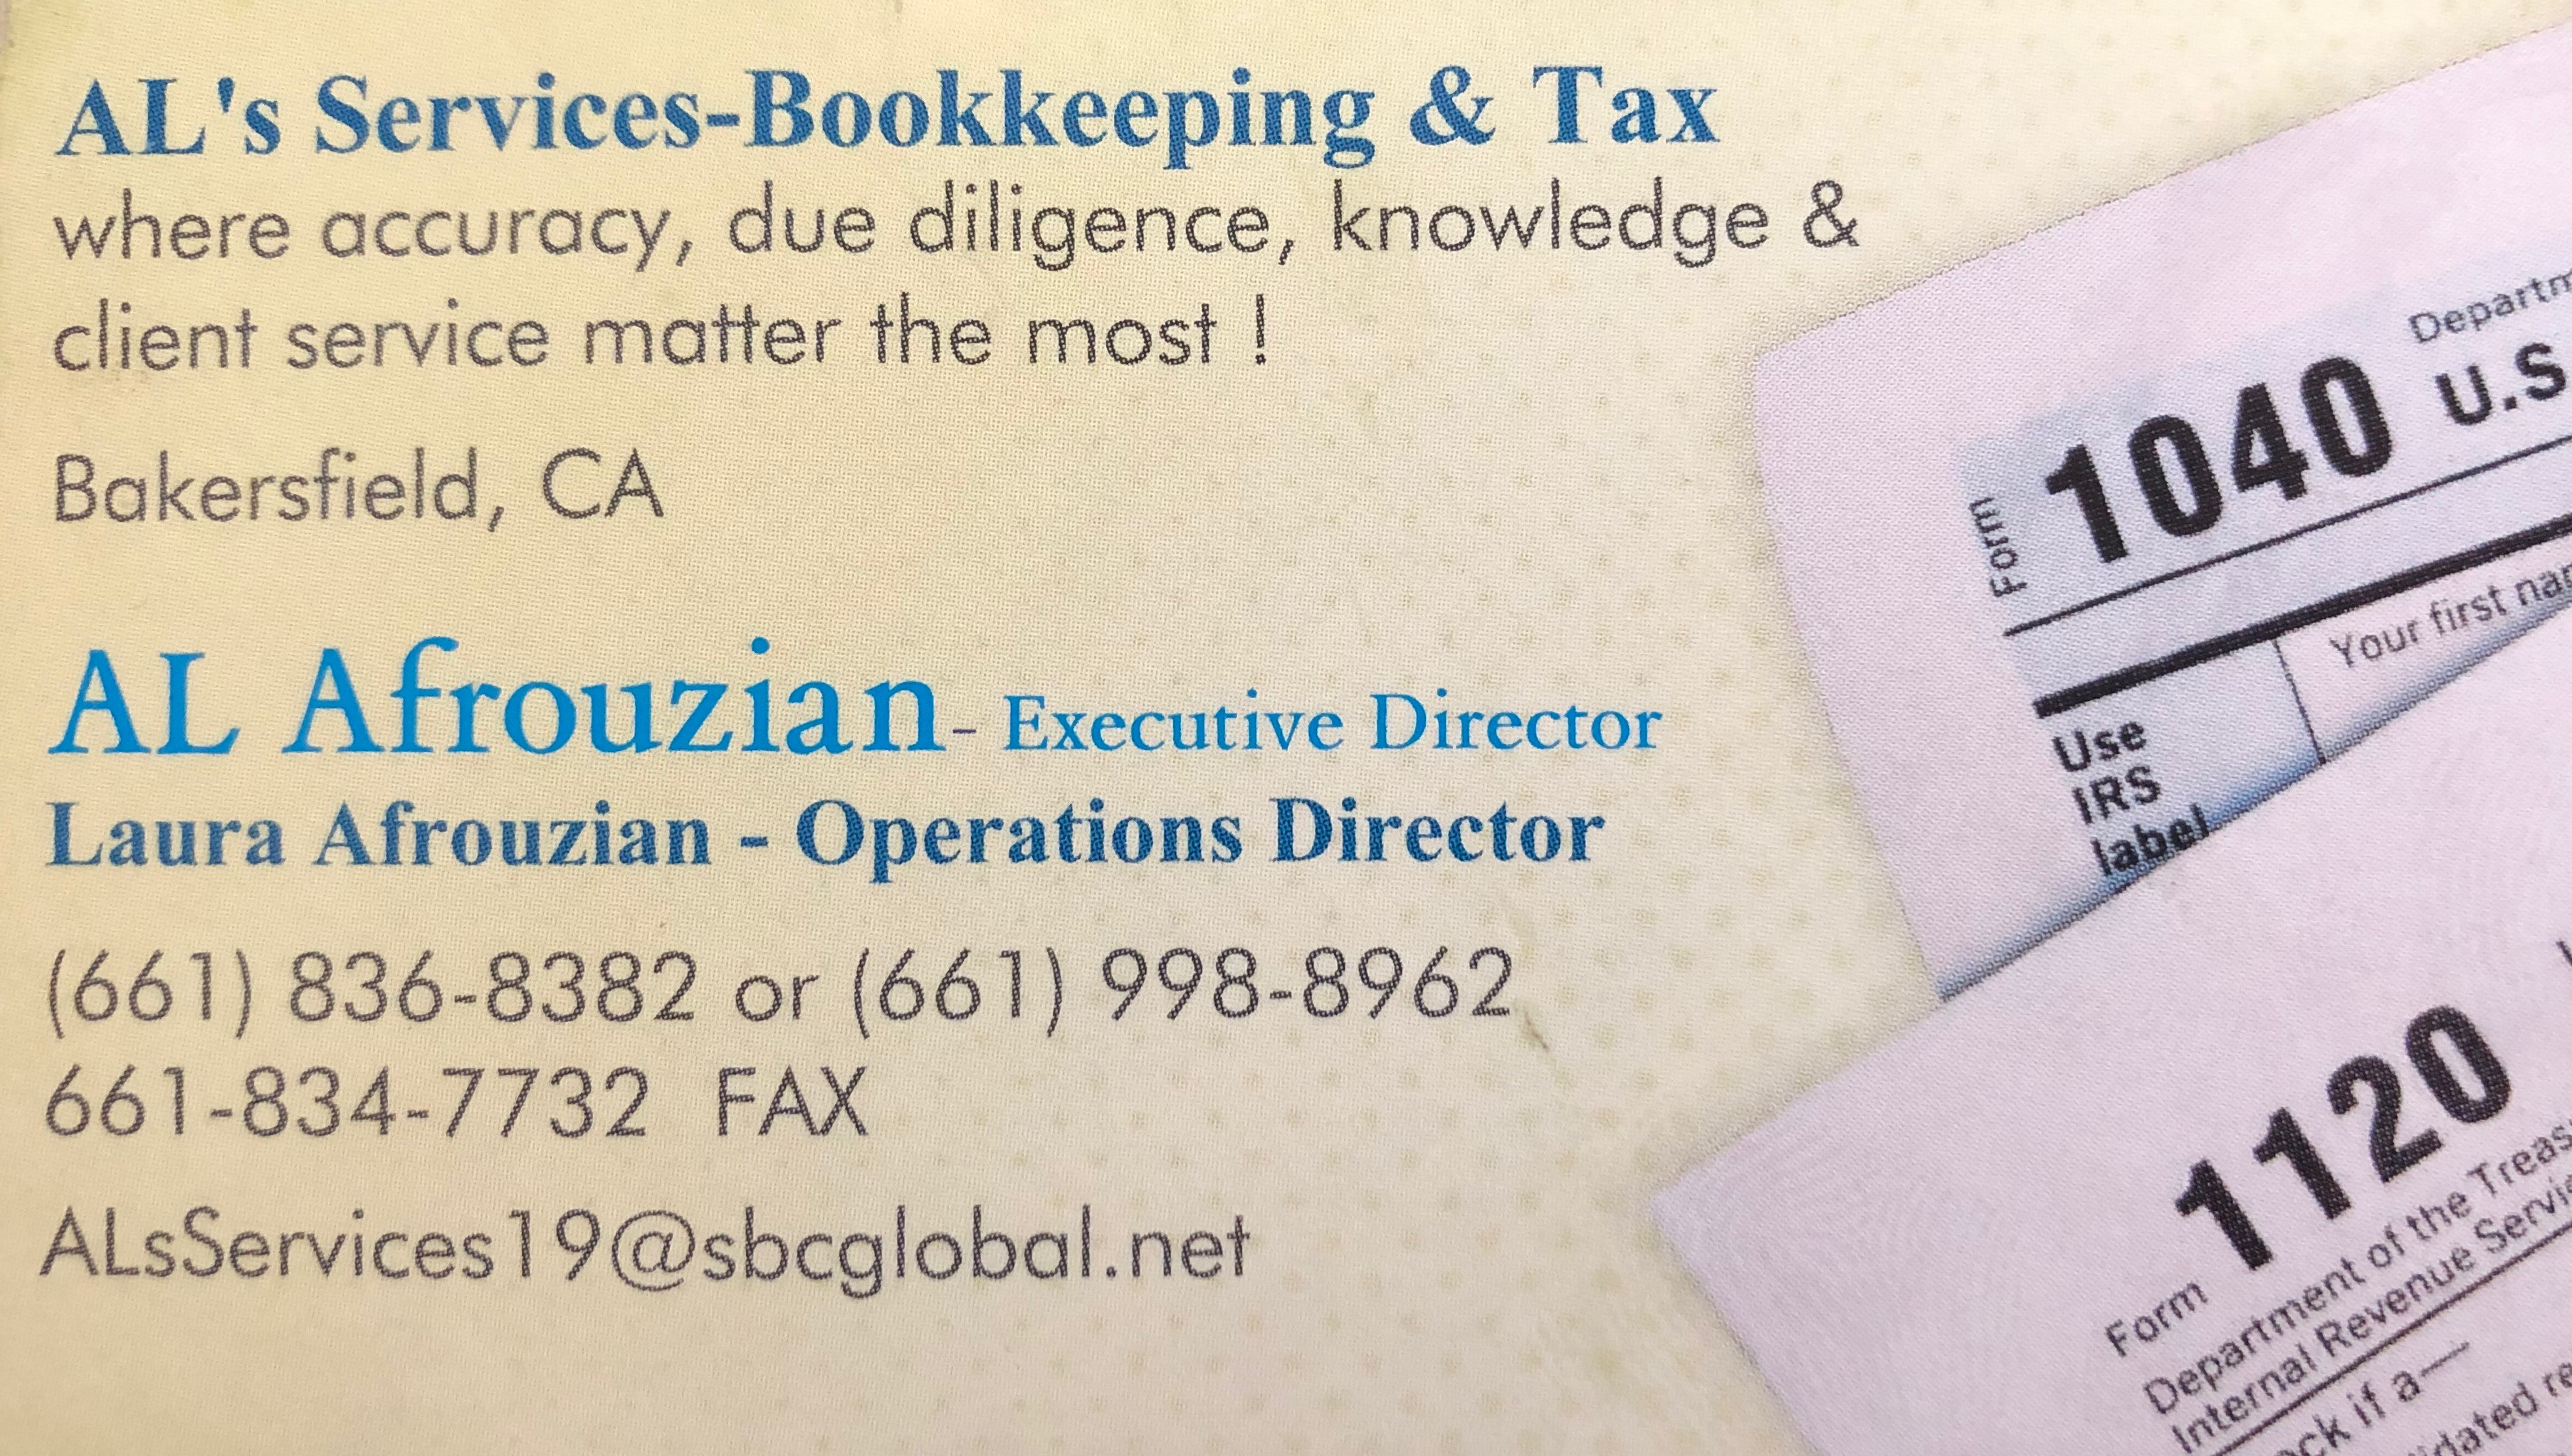 Al's Services - Bookkeeping & Tax